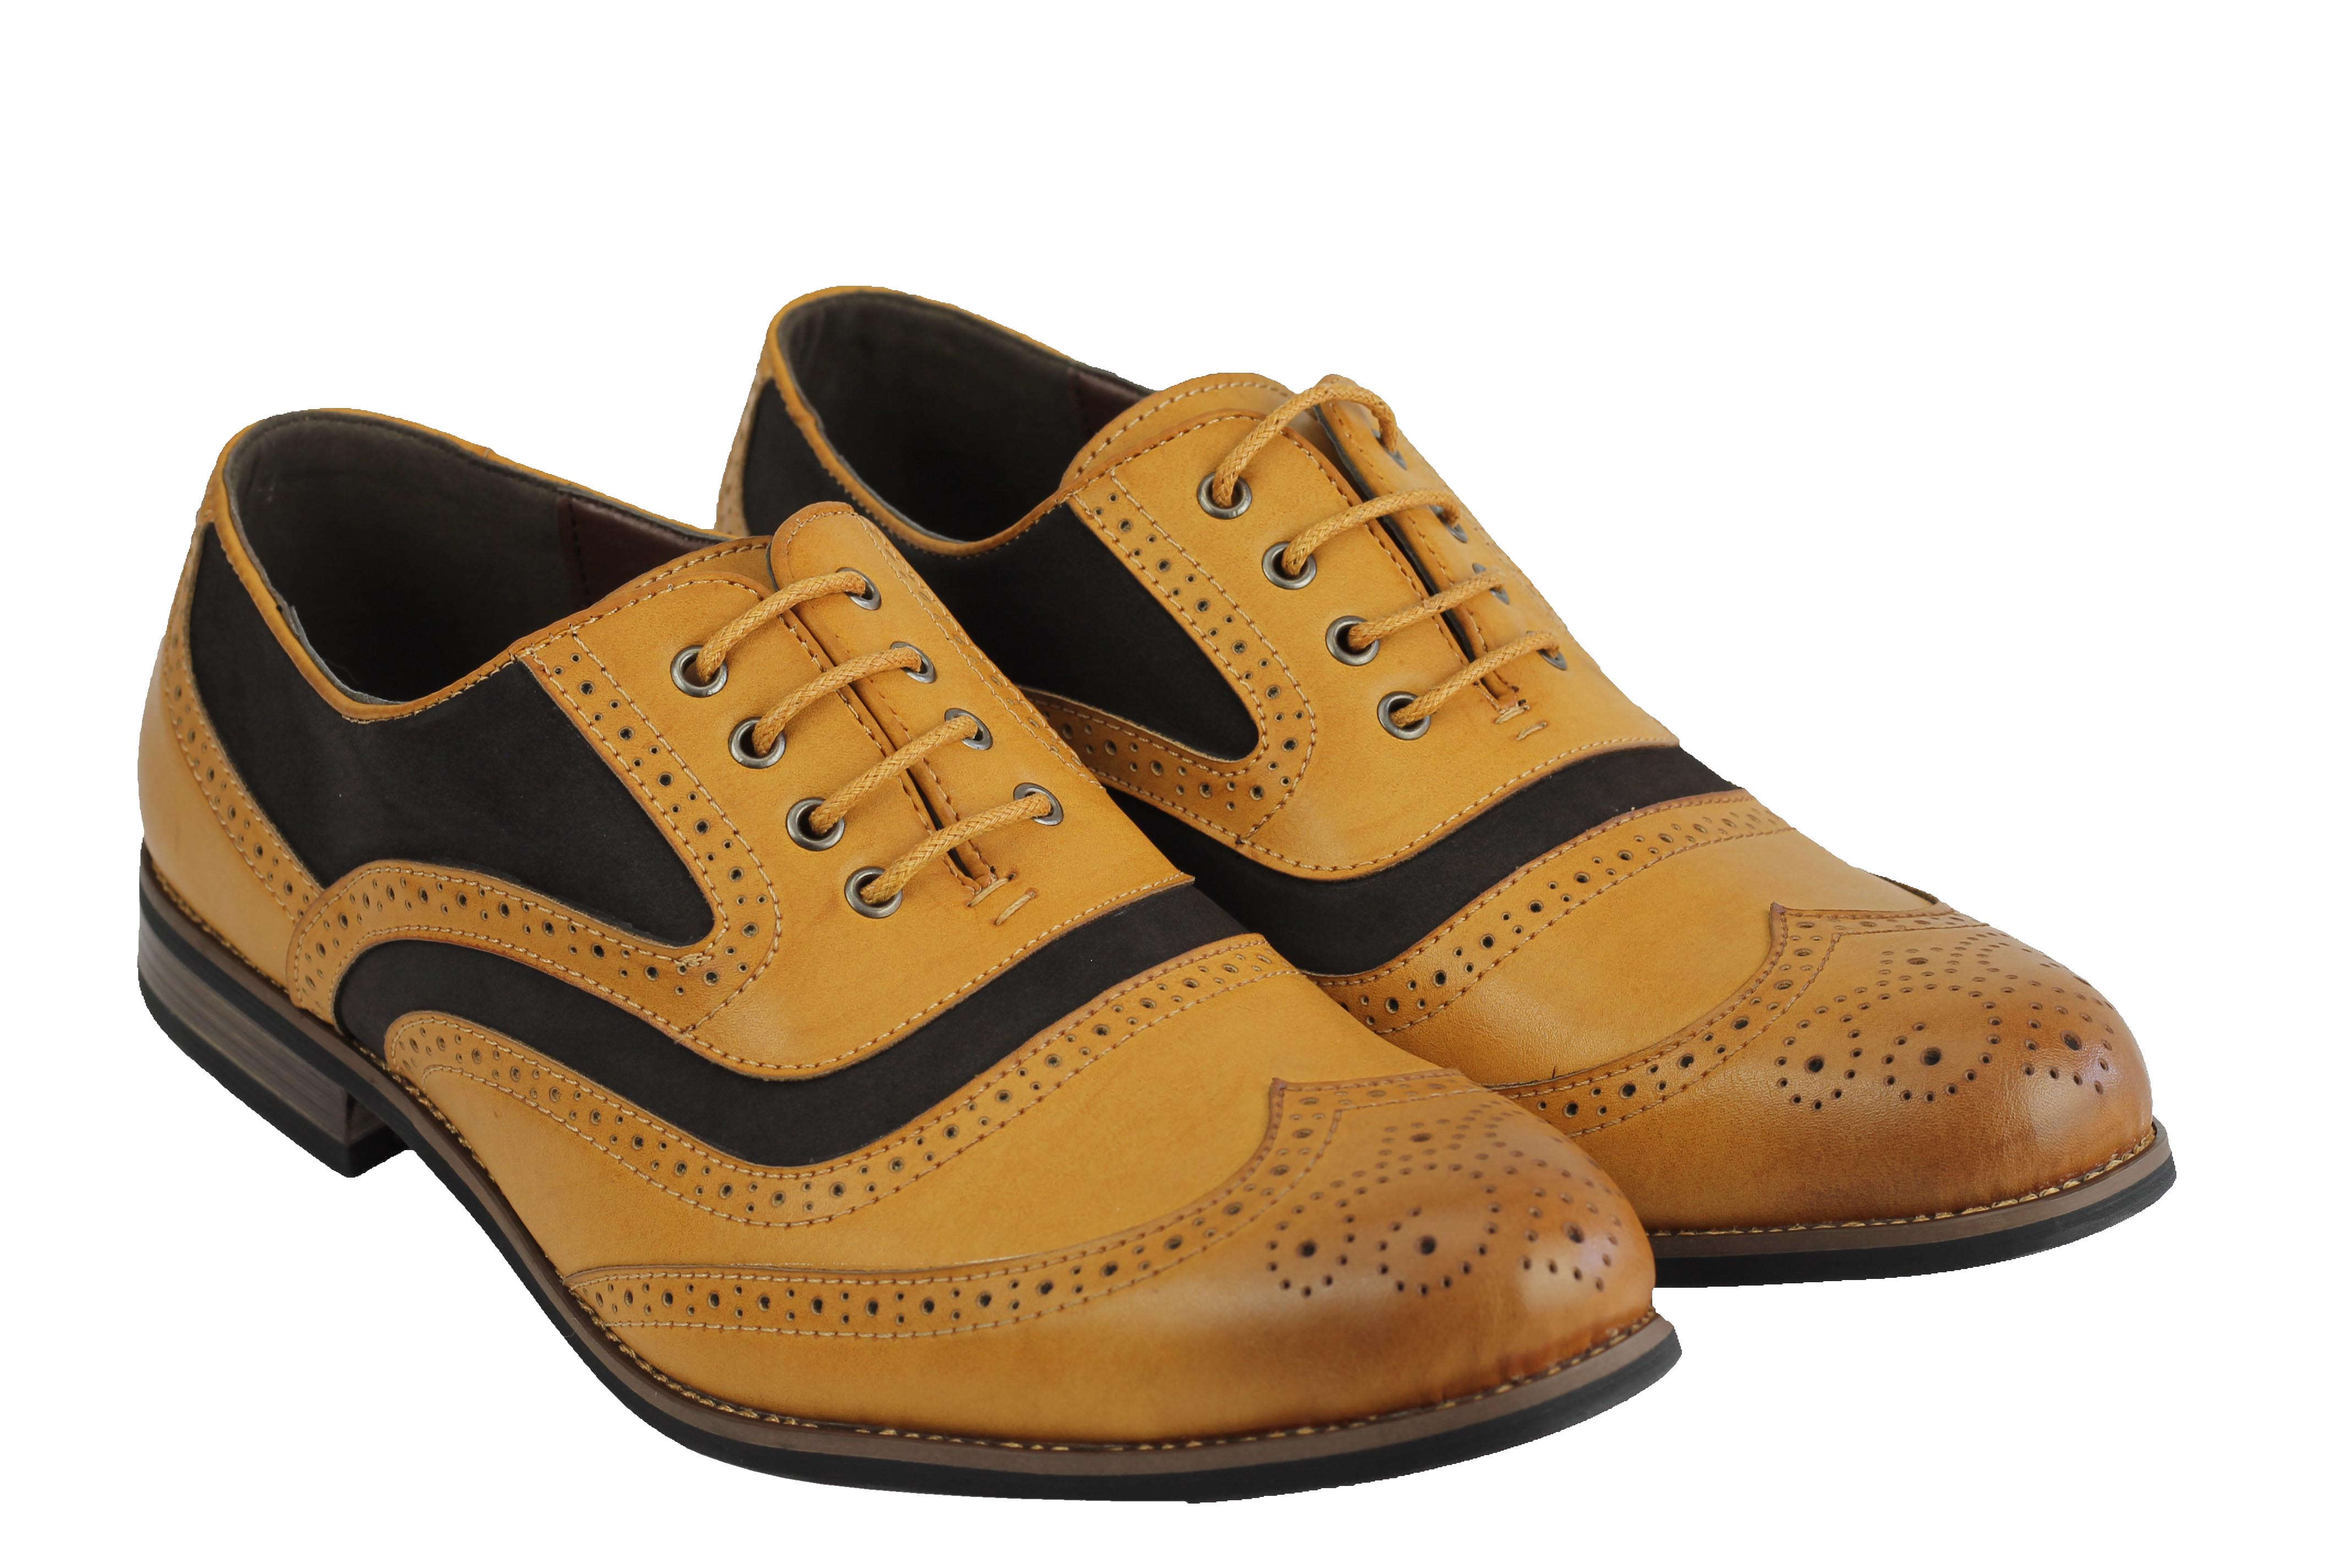 Mens-Retro-Vintage-Wing-Tip-Leather-Brogue-Smart-Casual-Office-Shoes-UK-Sizes thumbnail 9